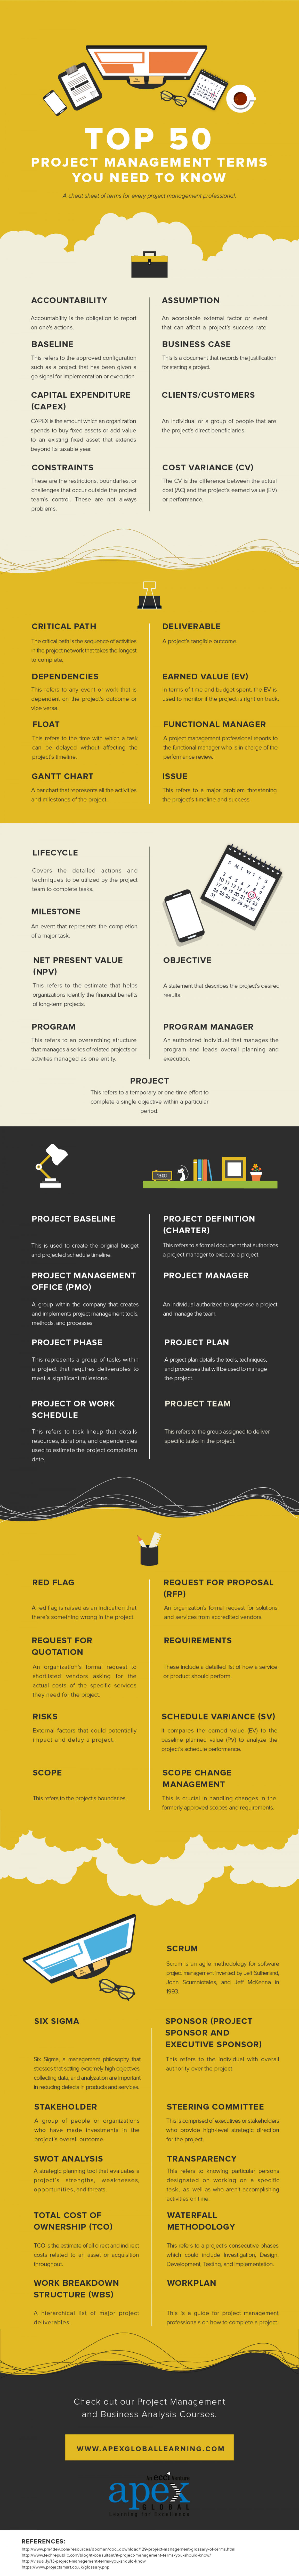 Top 50 Project Management Terms You Need to Know [Infographic] Infographic